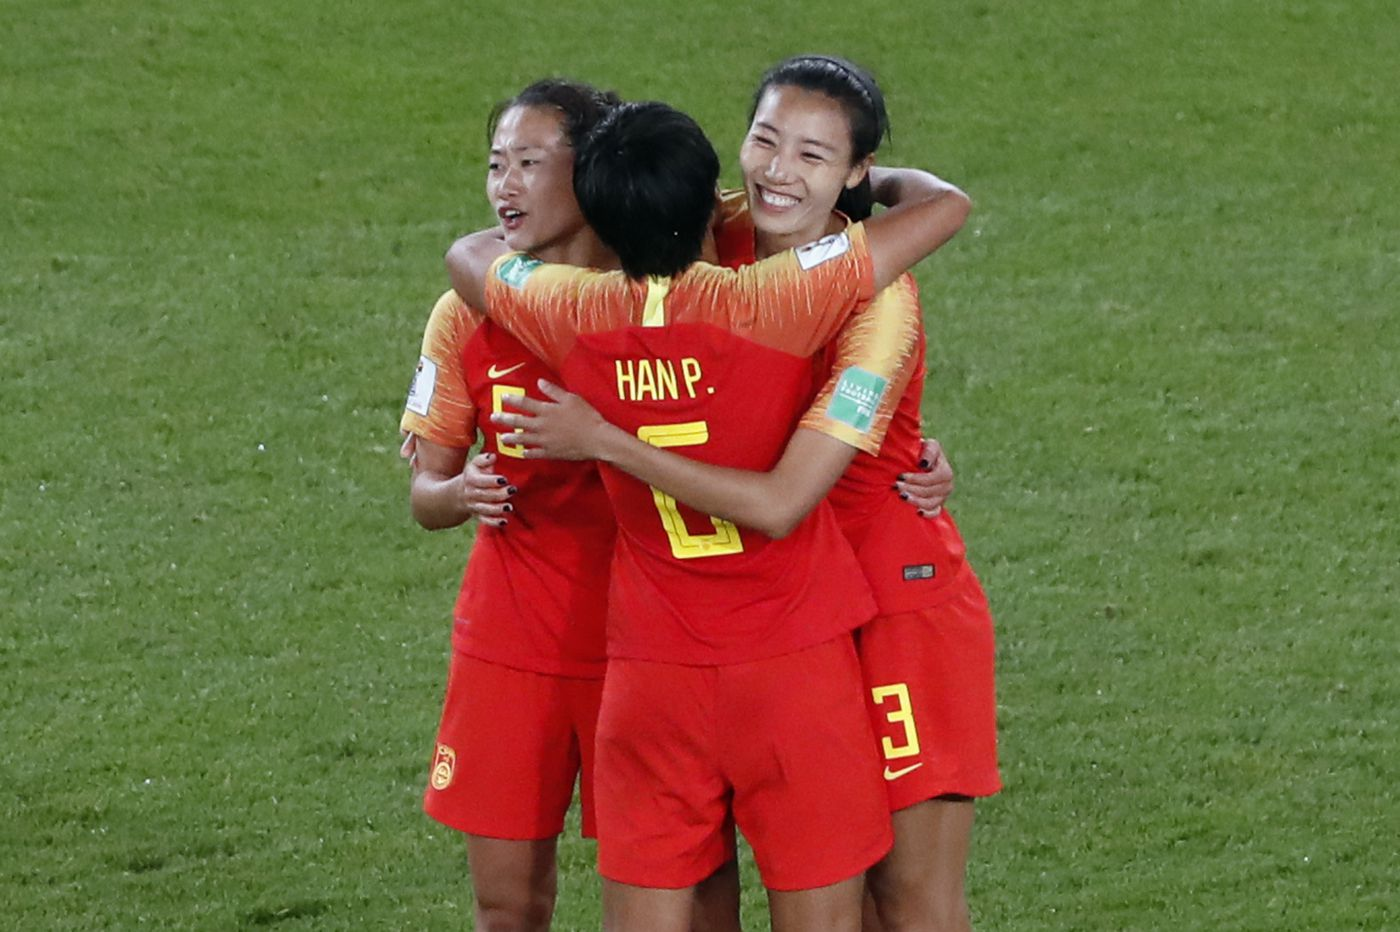 China beats South Africa at Women's World Cup 1-0 to set up group decider vs. Spain